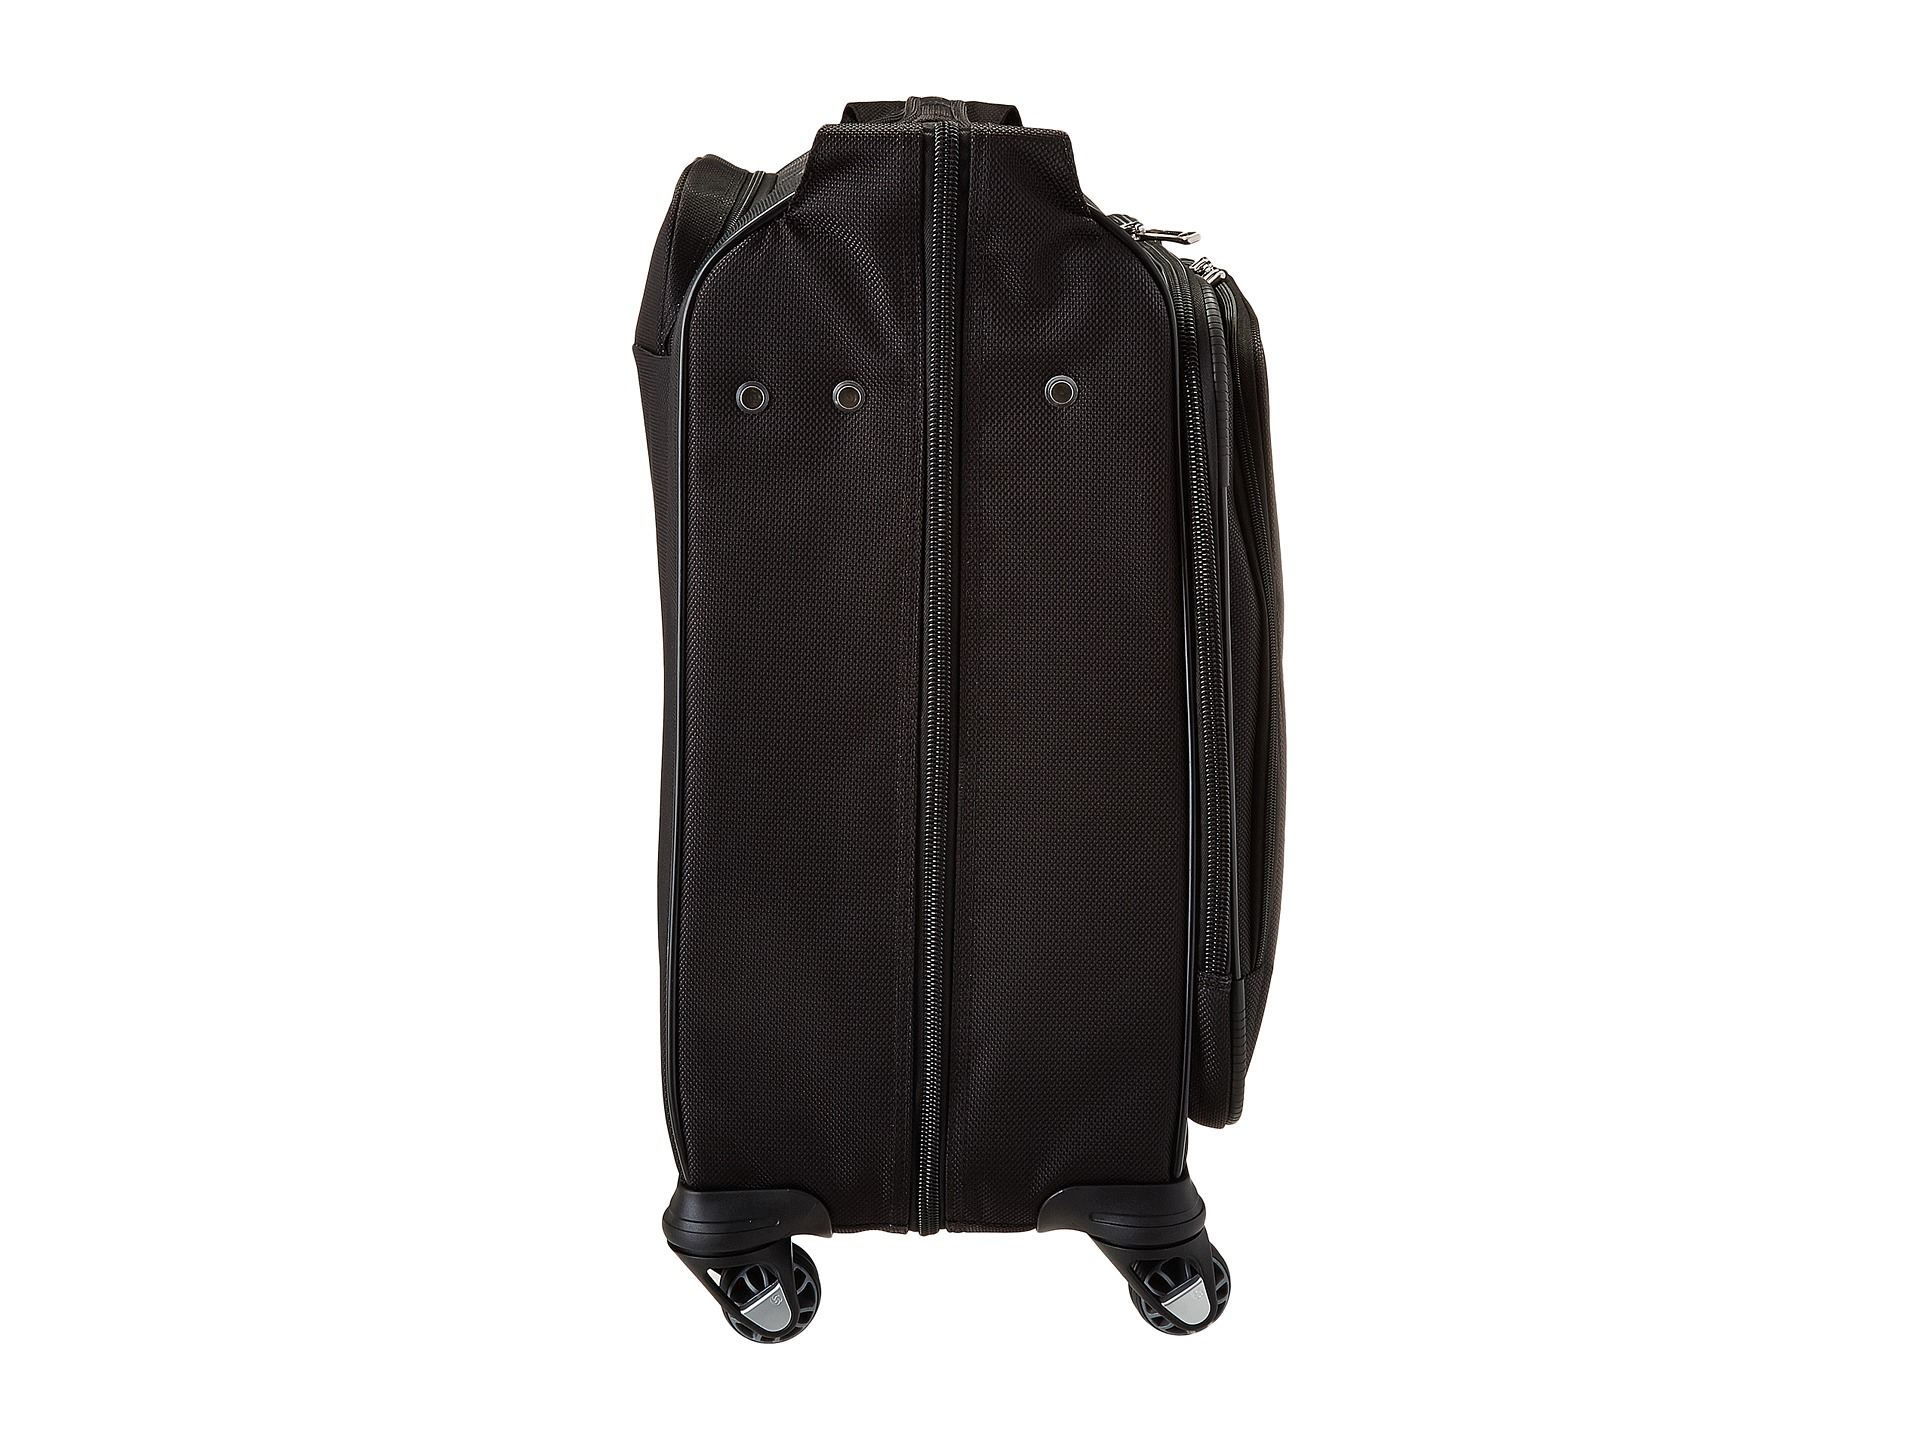 Samsonite silhouette sphere 2 deluxe voyager garment bag for Wedding dress garment bag for plane